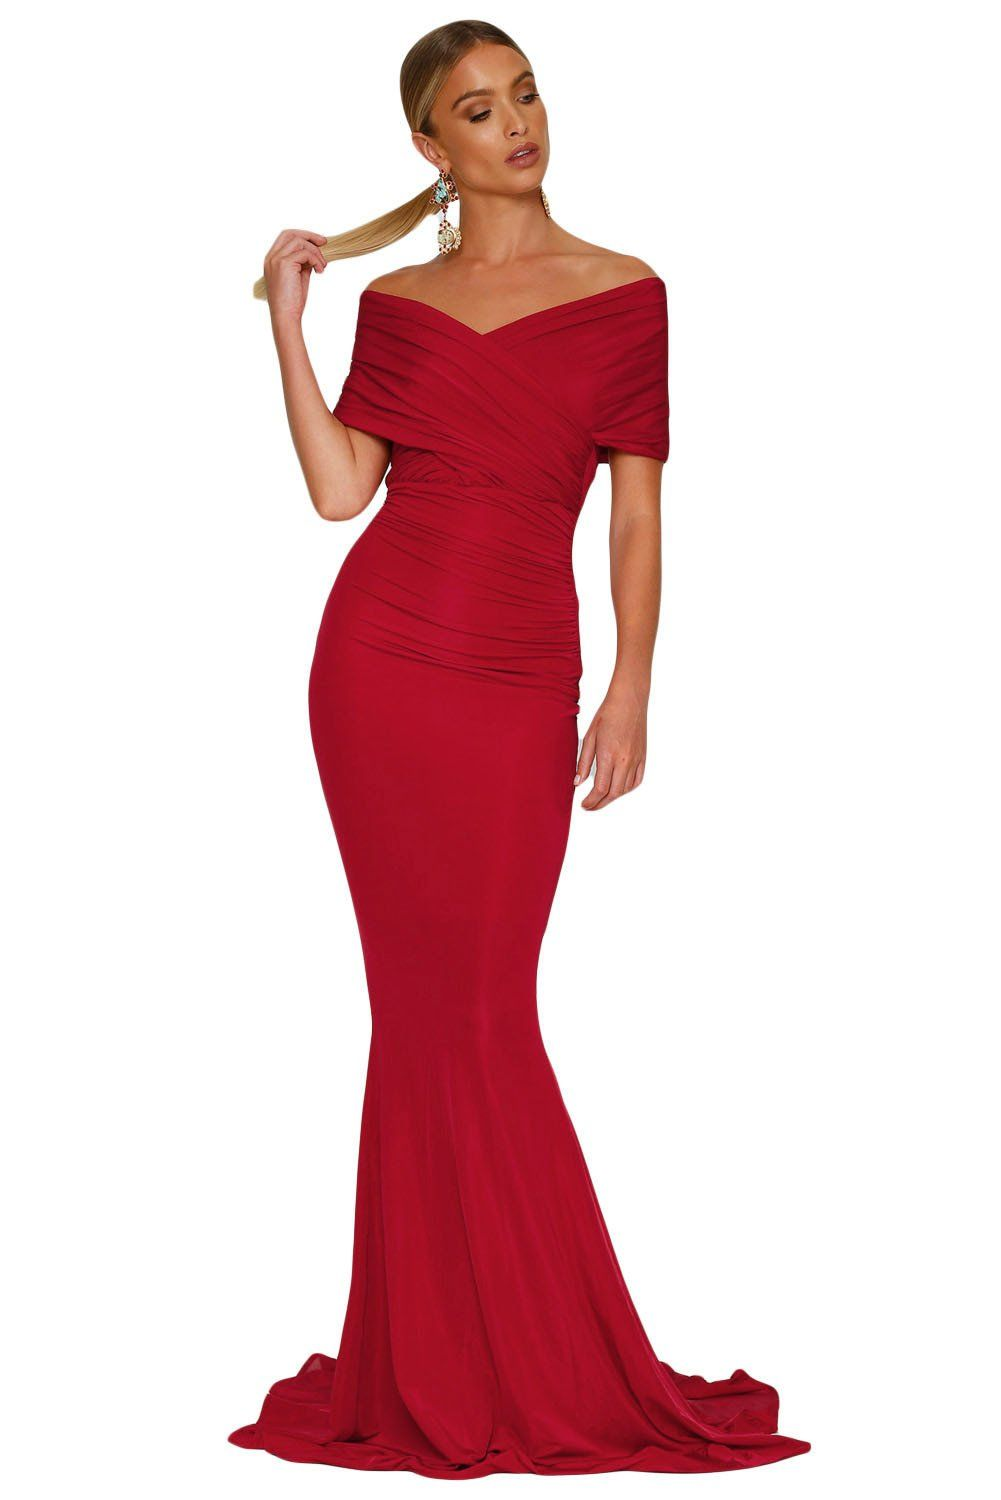 Red offshoulder mermaid wedding party gown in the wedding i